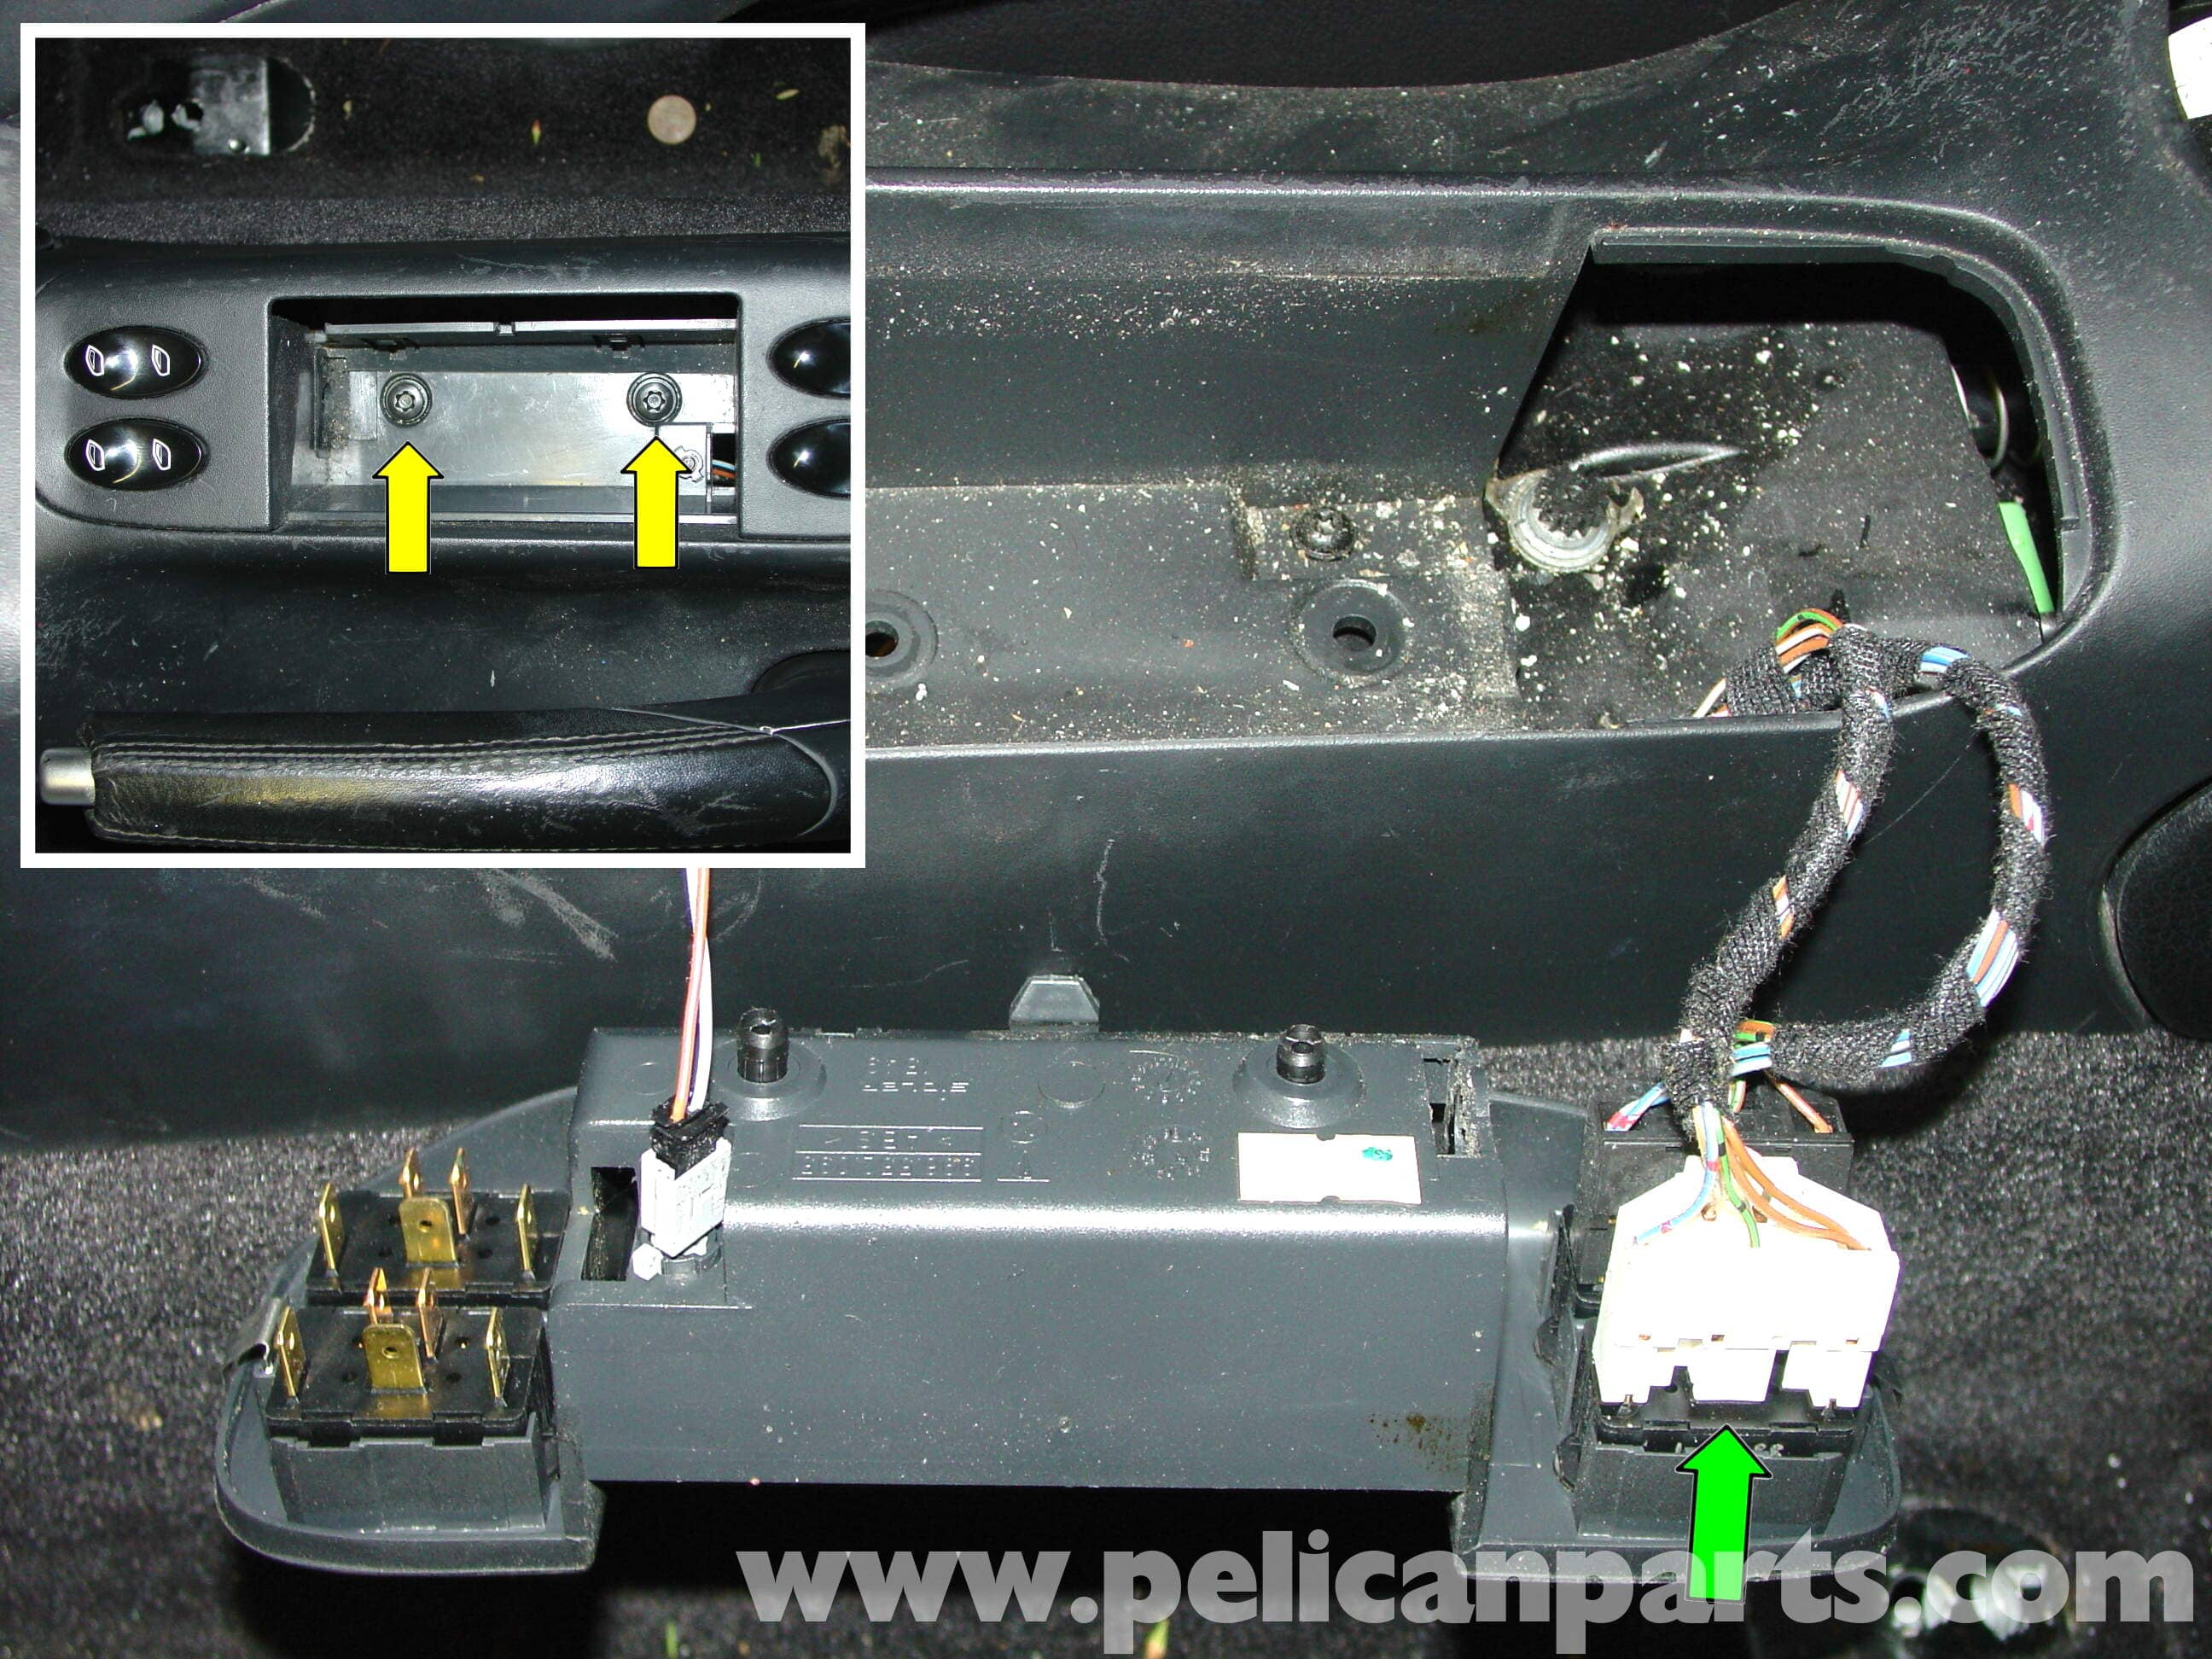 porsche 911 power window wiring diagram    porsche       911    carrera    window    regulator and motor replacement     porsche       911    carrera    window    regulator and motor replacement